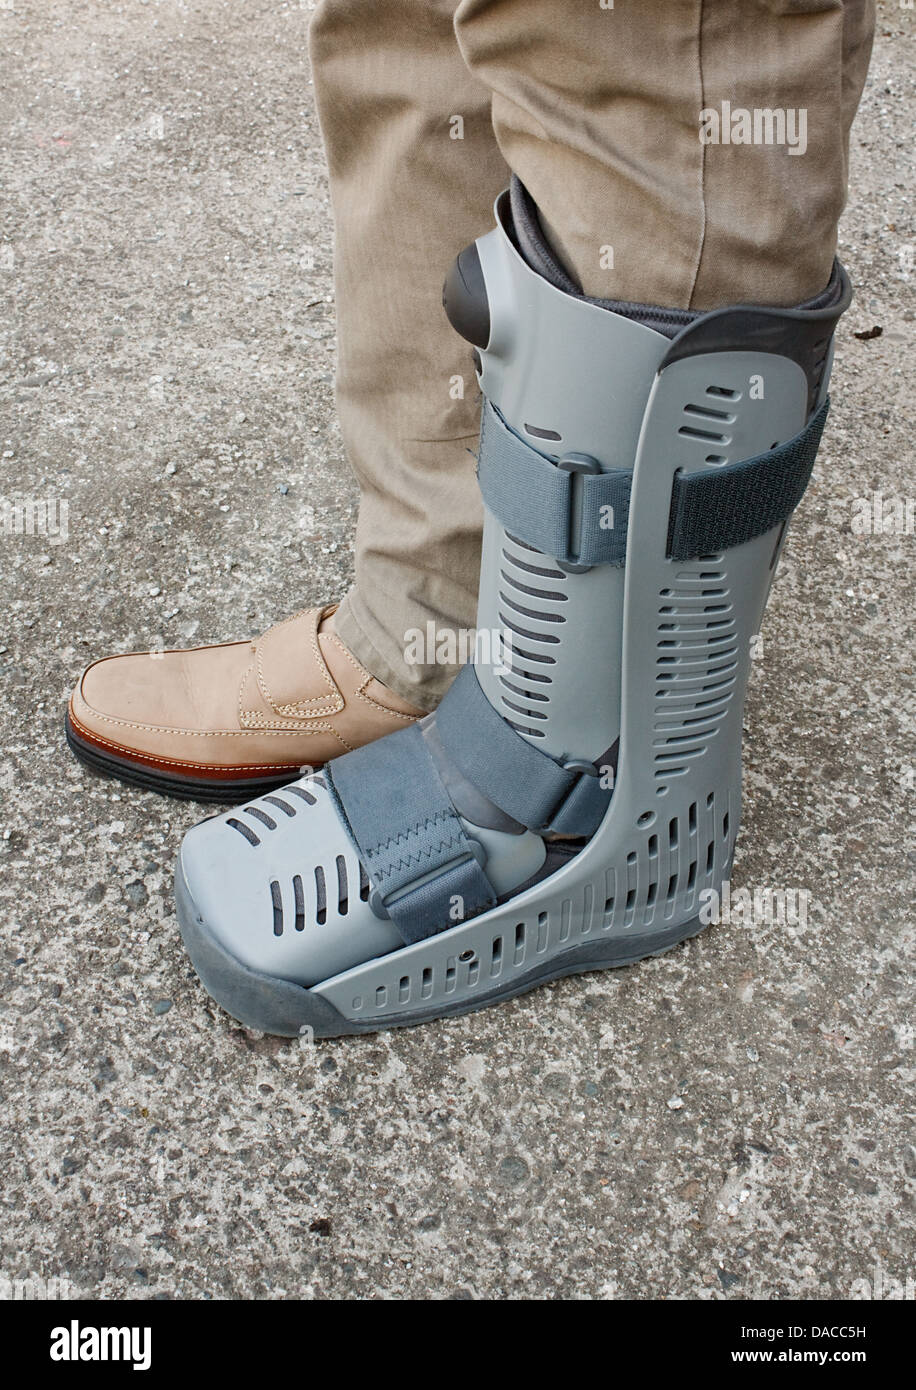 Compression boot on ankle which has recently suffered injury or surgical operation - Stock Image